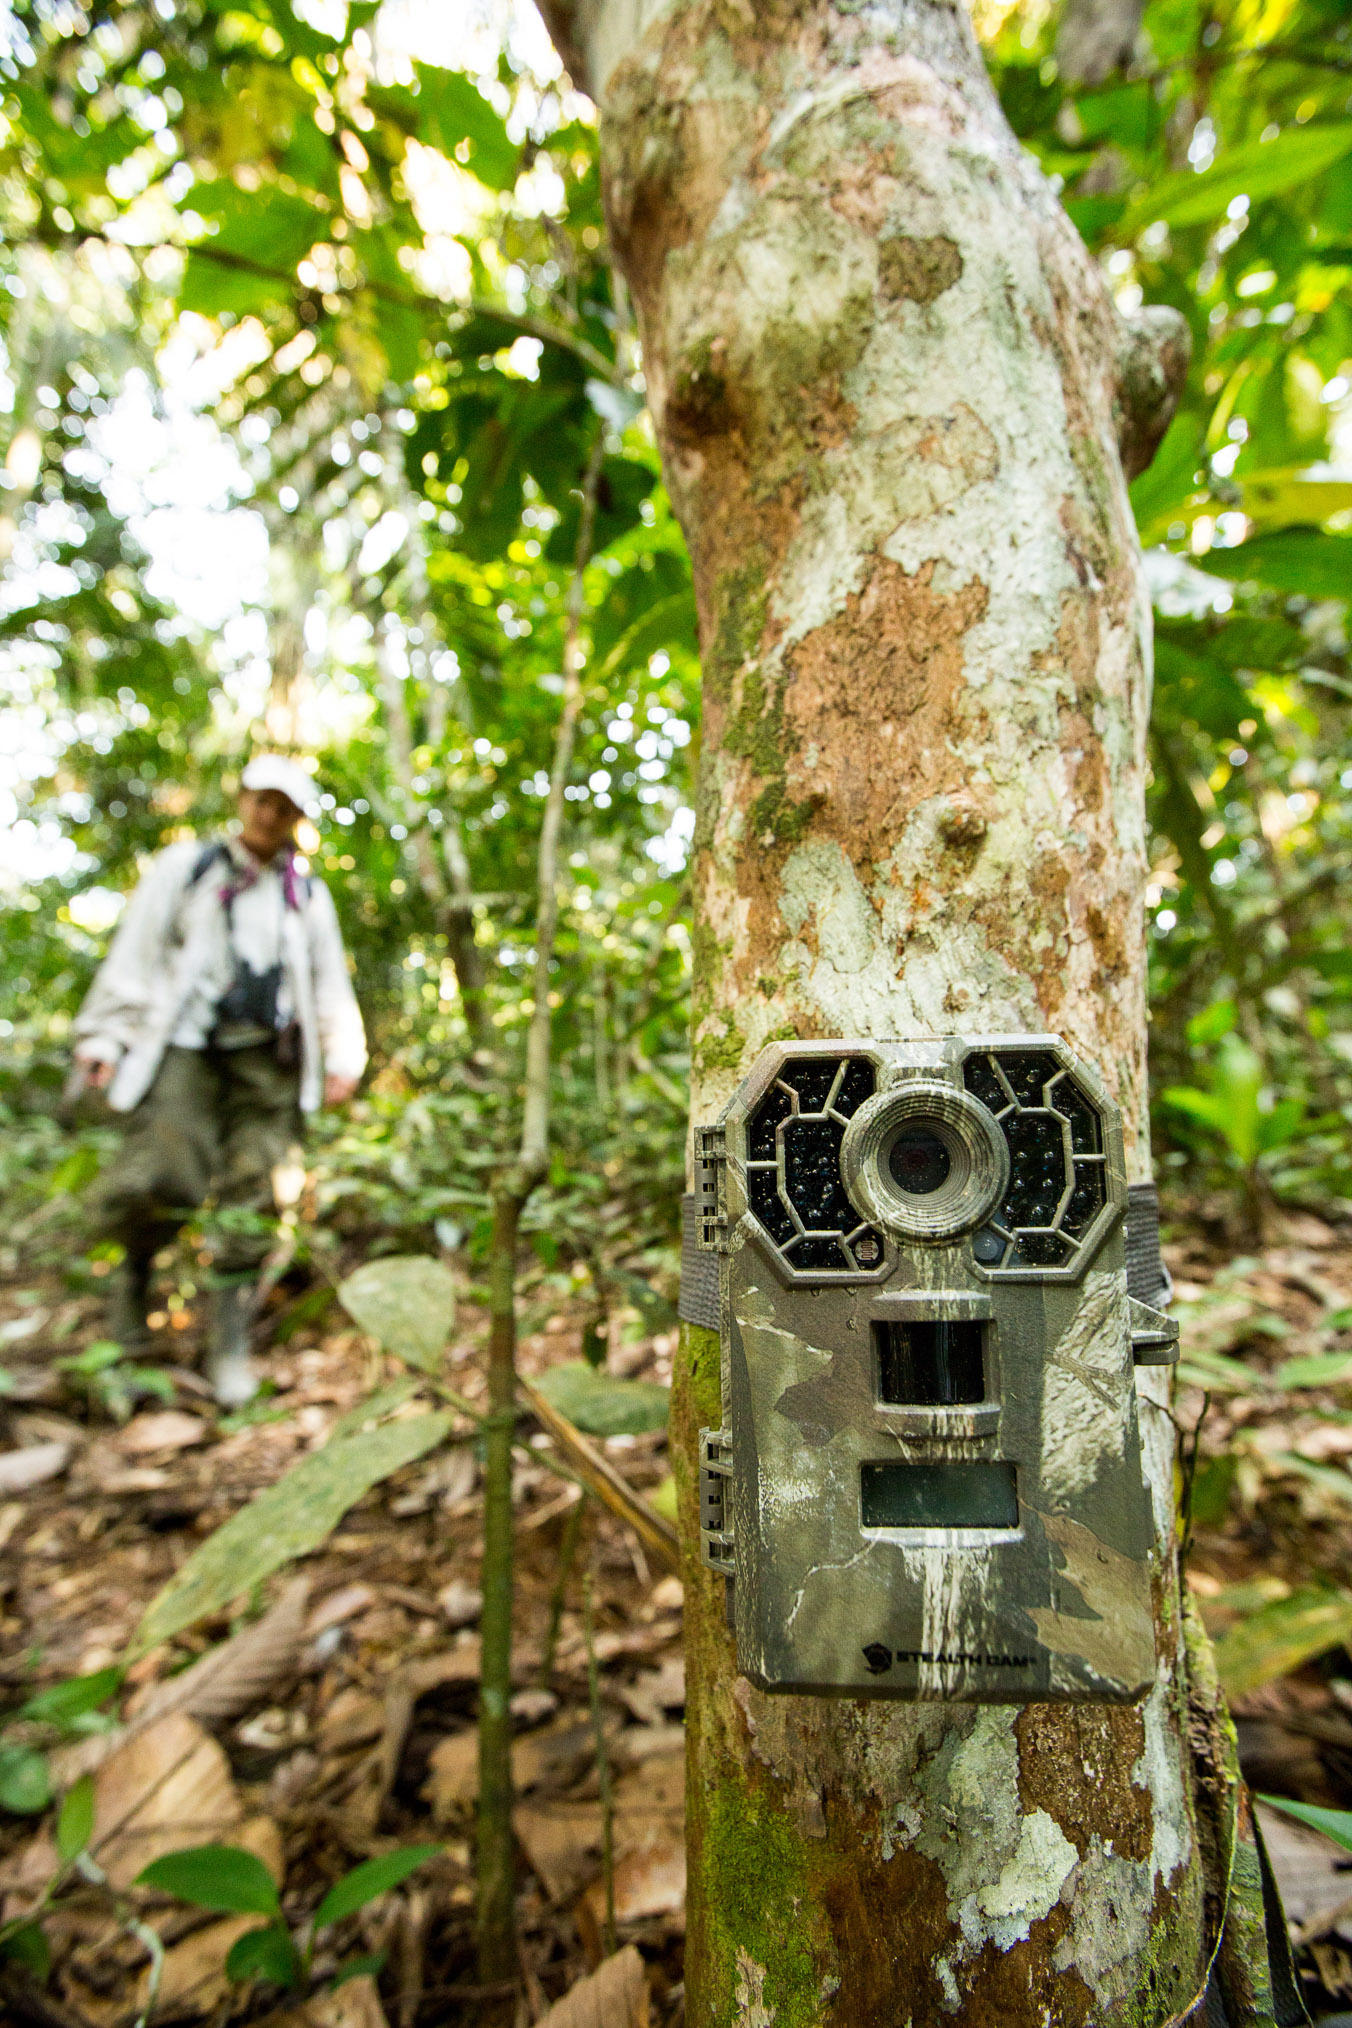 The scientists set camera traps to collect data on mammals such as tapir, paca, deer, agoutis, tayra, peccaries, and pumas that visit salt and clay licks in the Juruá watershed.